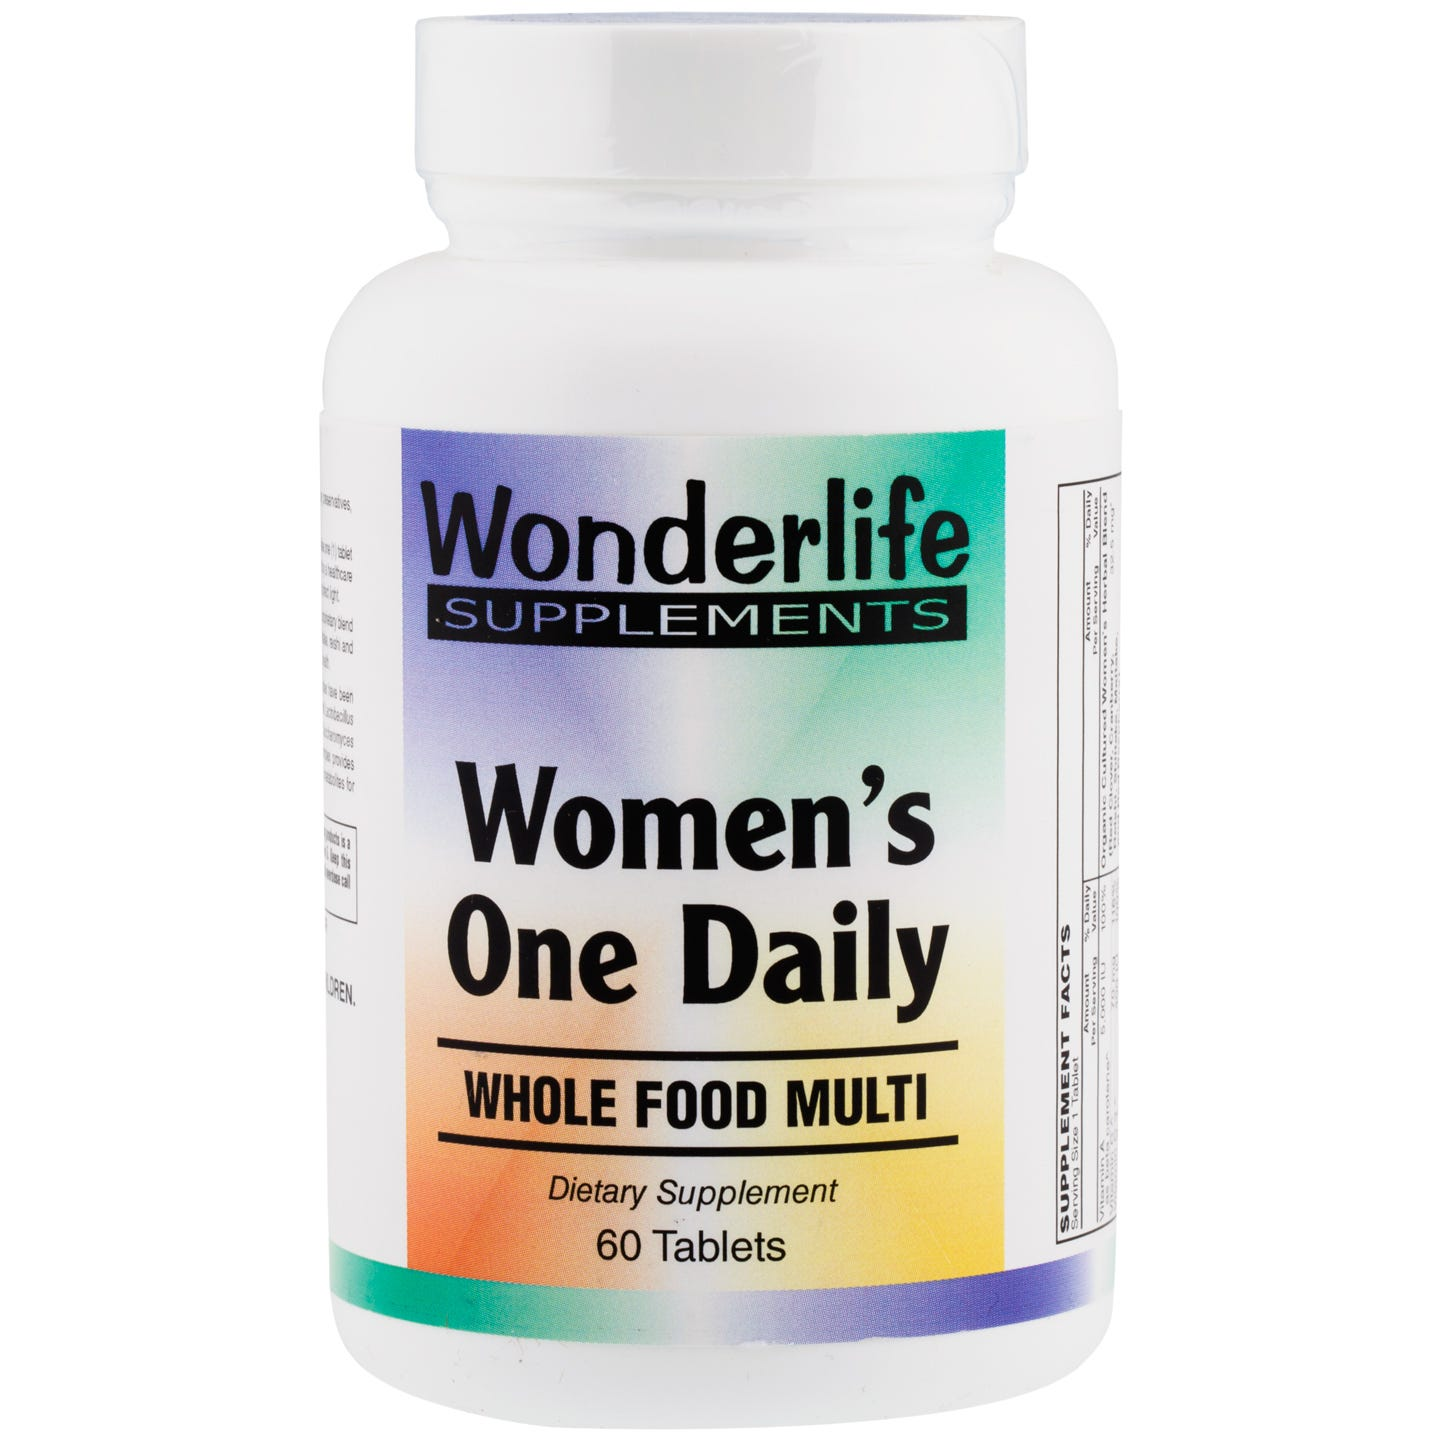 Women's One Daily (60 Tablets), Wonderlife - Rapid Diet Weight Loss Products Shop